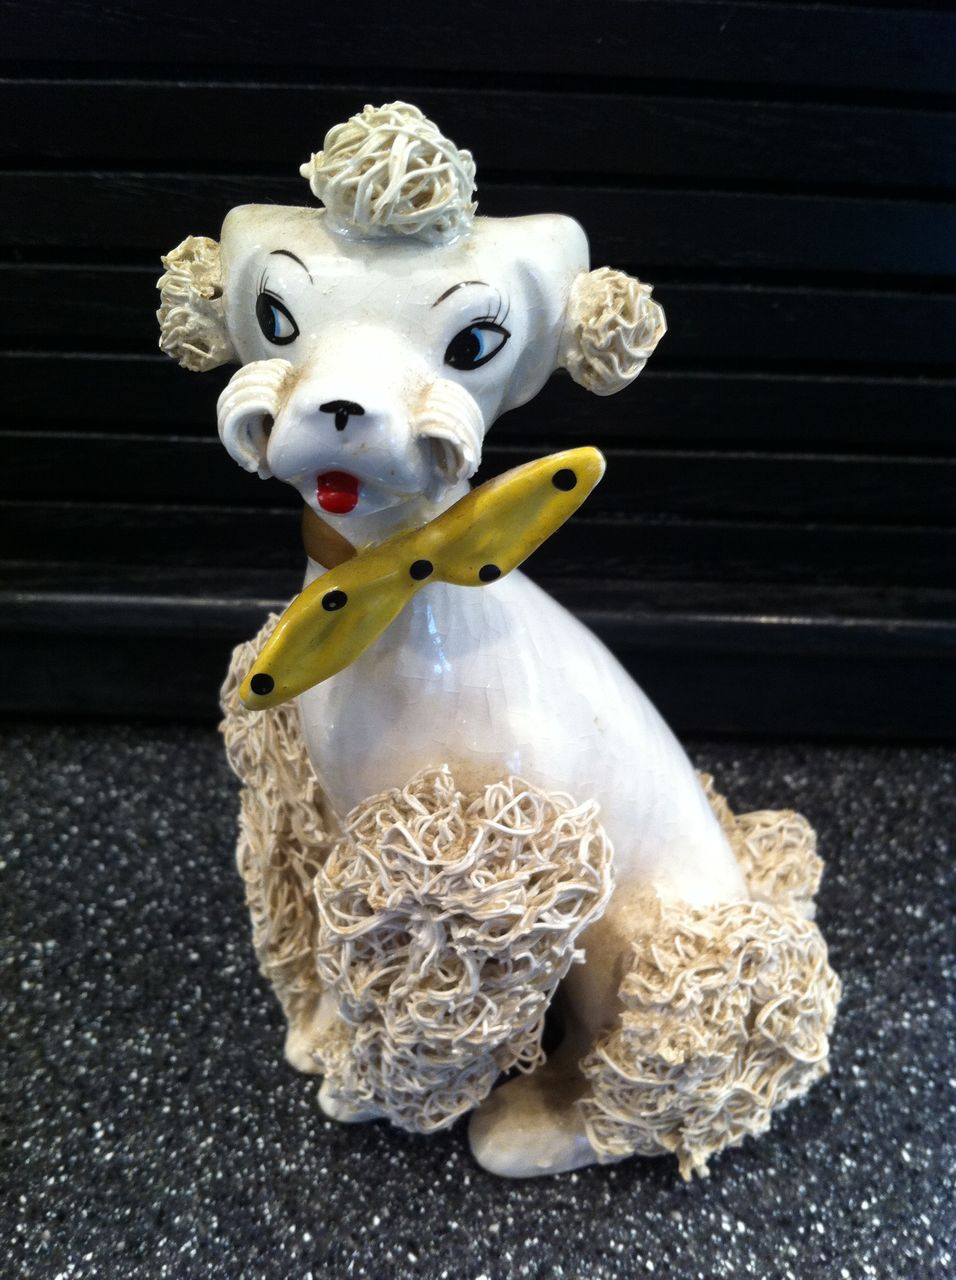 White Spaghetti Poodle with Yellow Polka Dot Tie